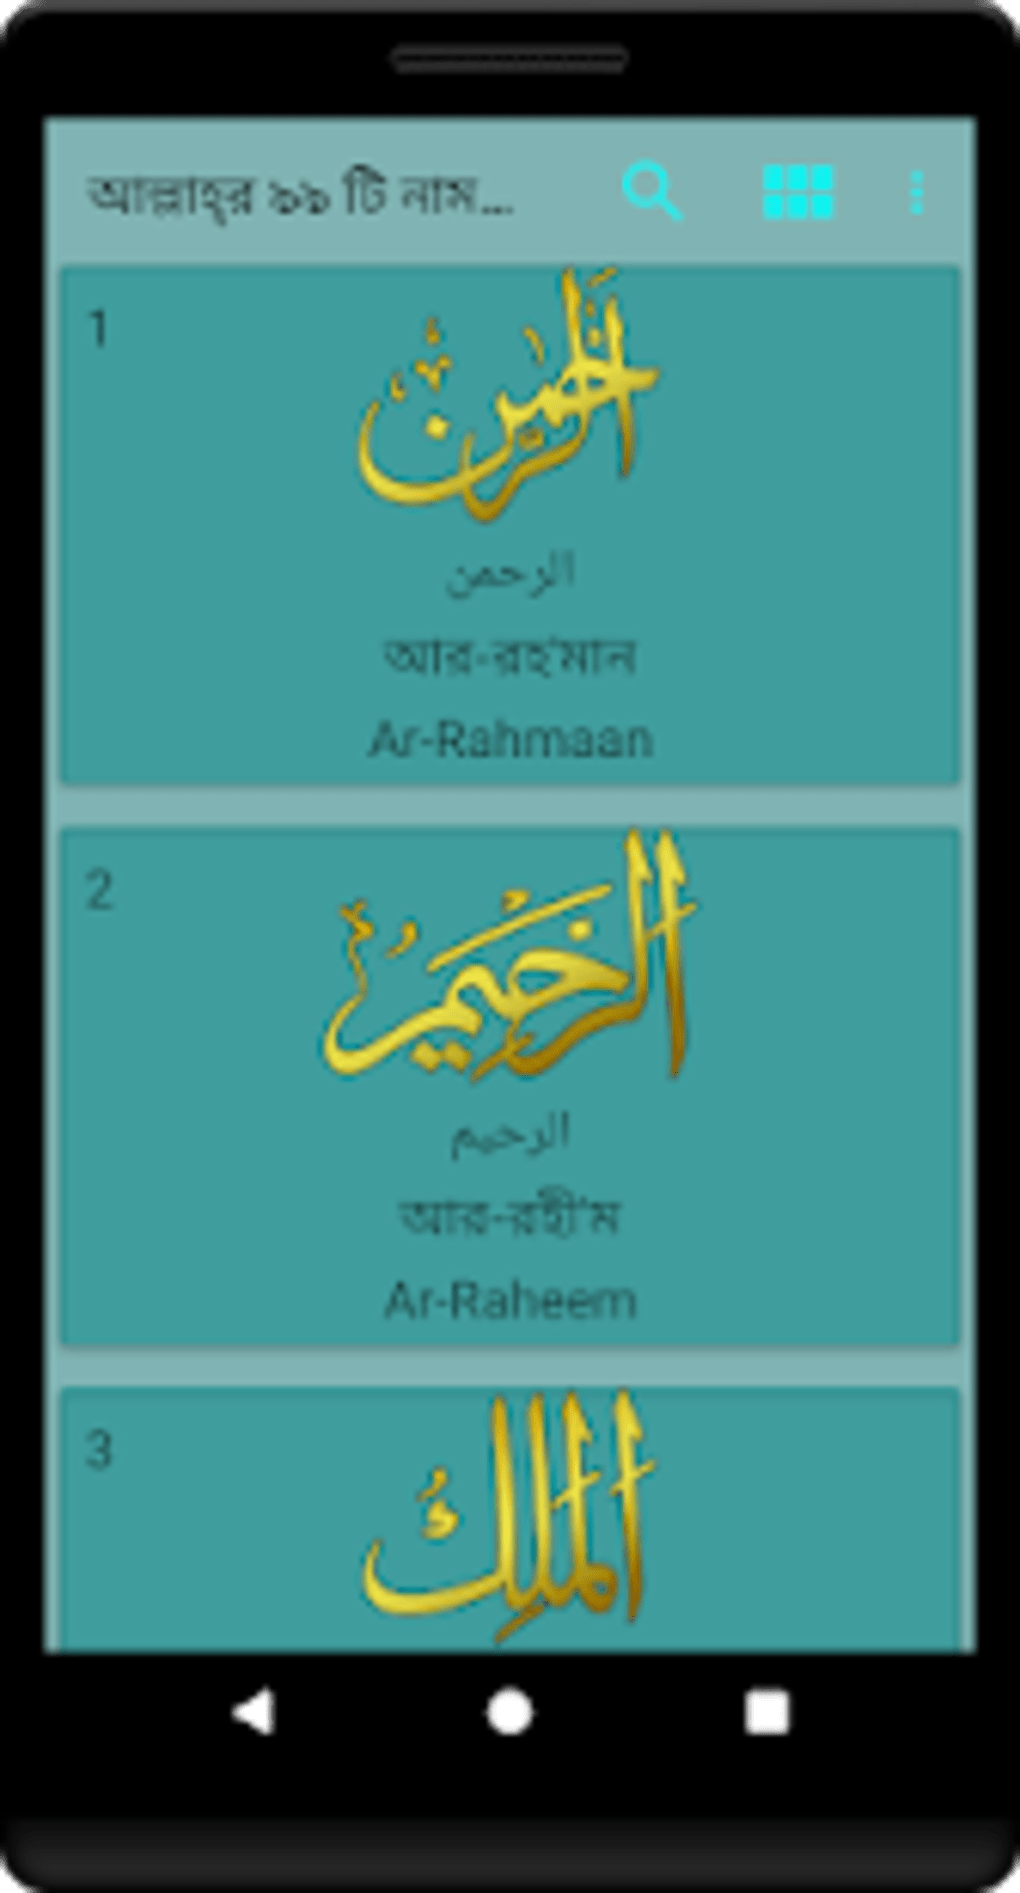 99 Names of Allah আললহর ৯৯ ট নম for Android - Download